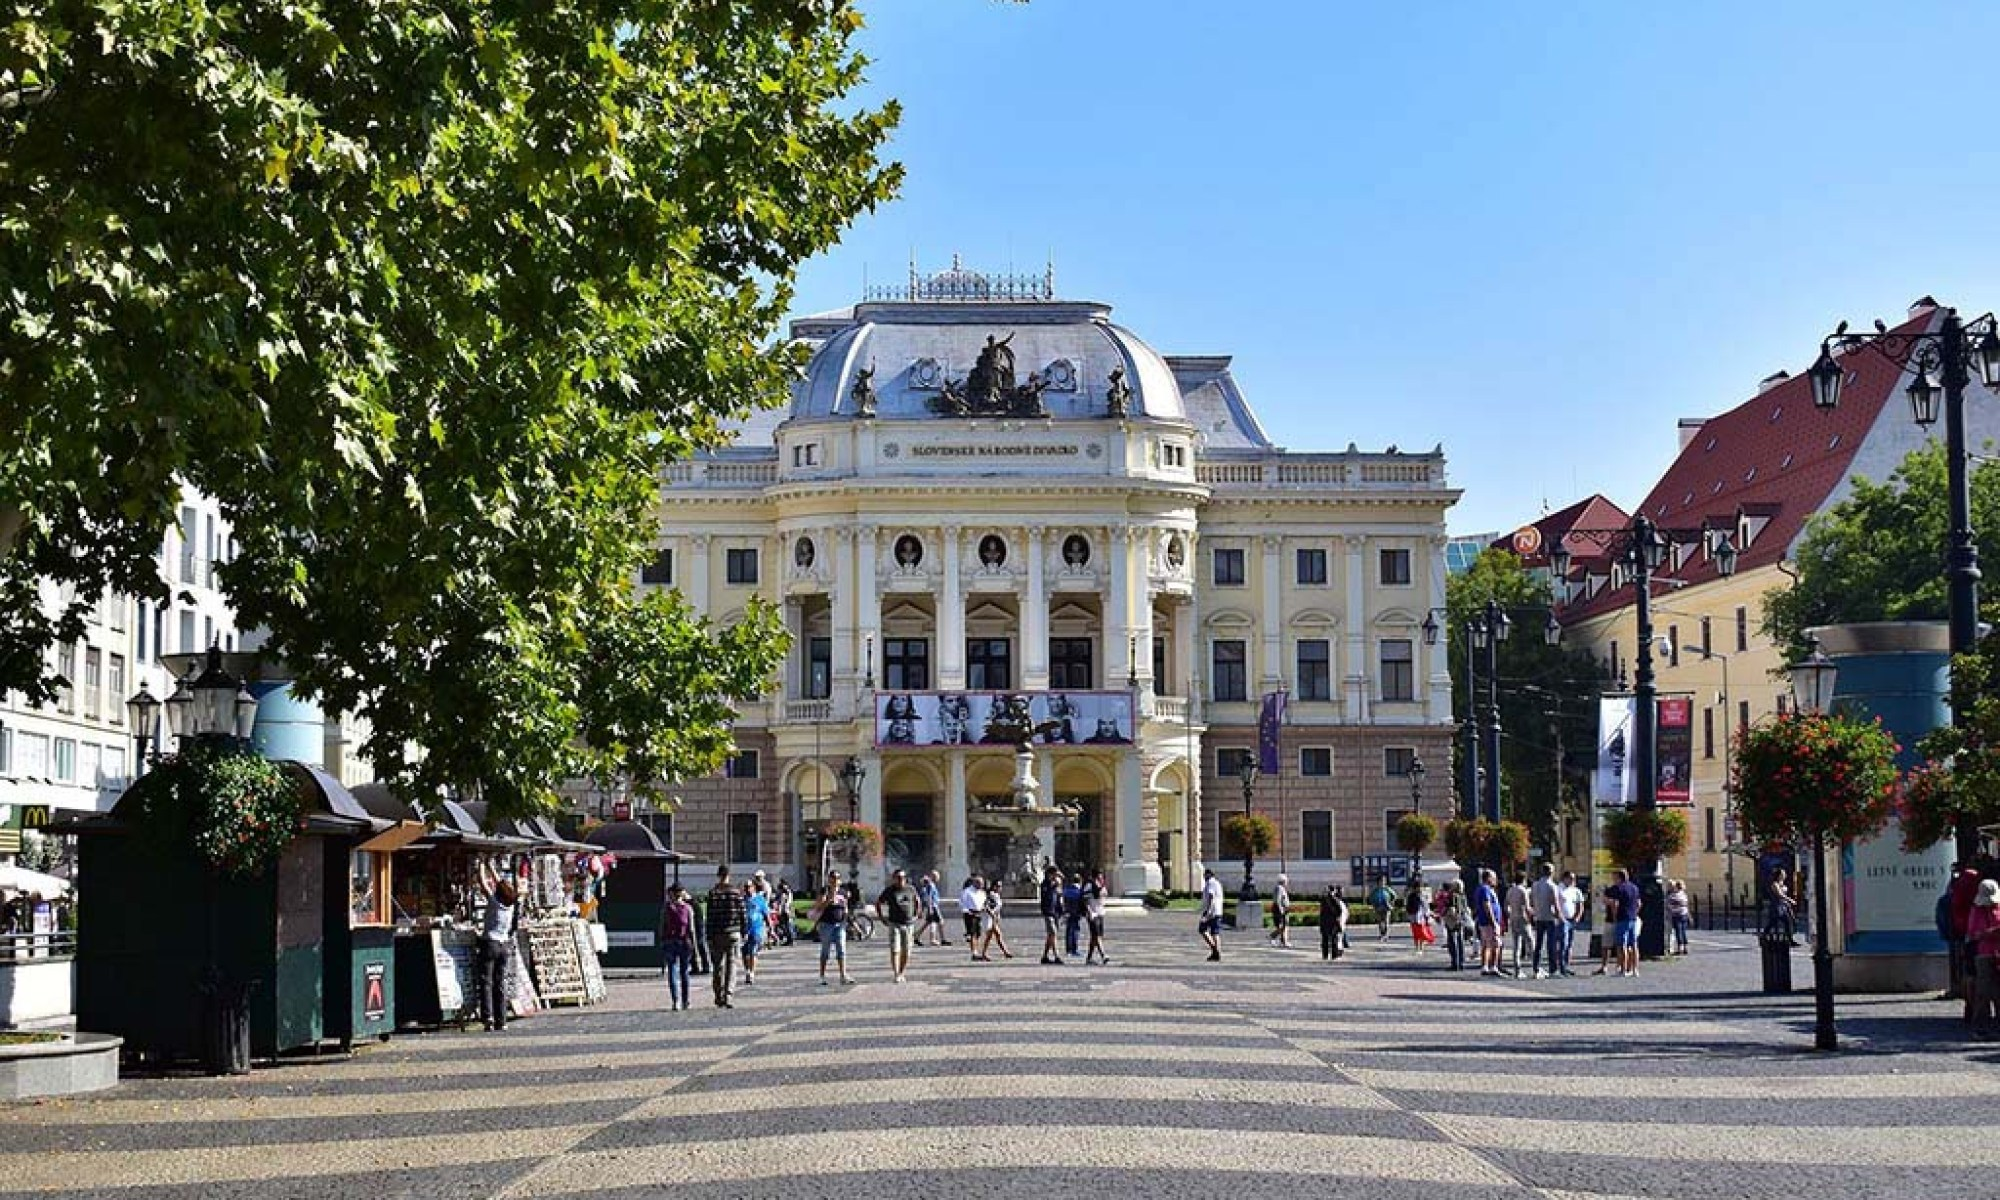 The Slovakian National Theatre in Bratislava